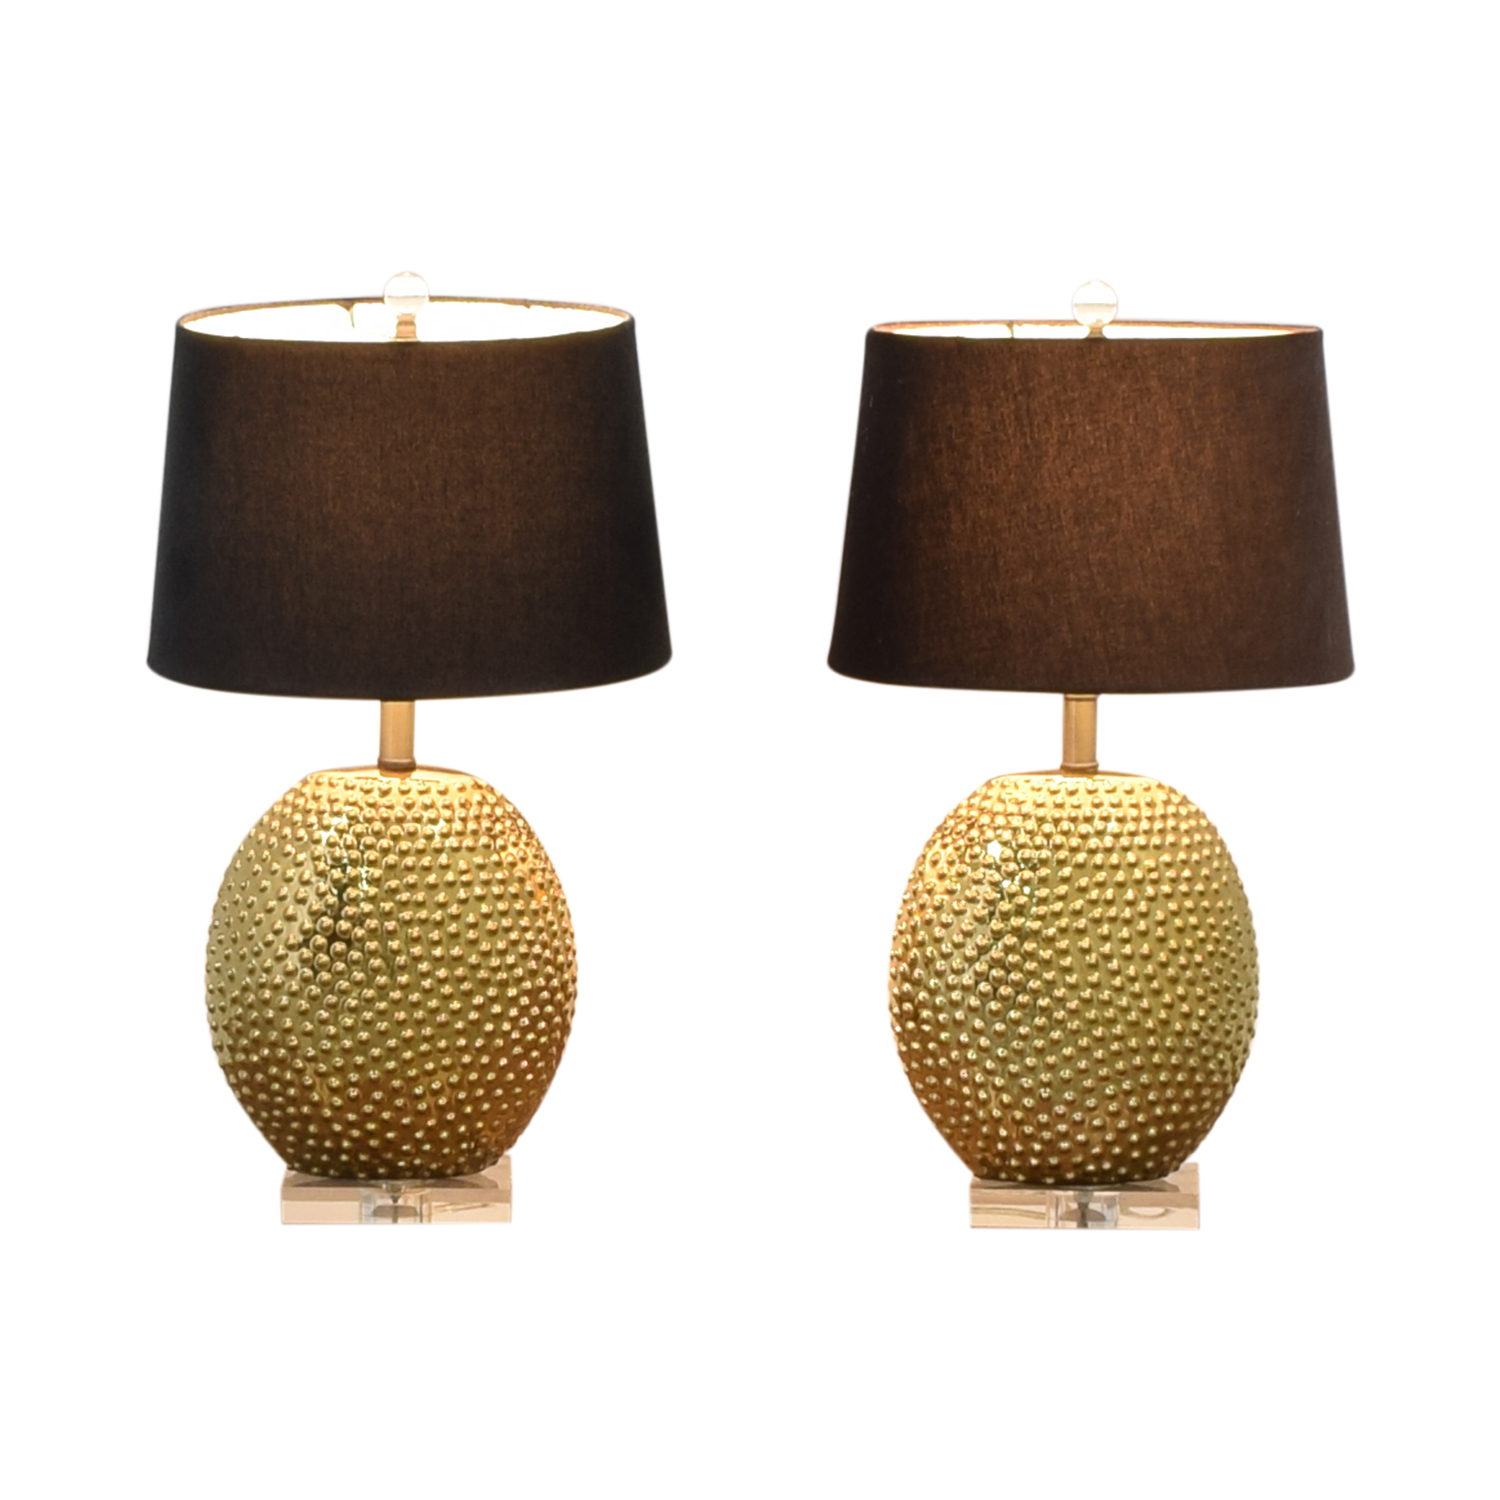 Tahari Home Tahari Home Decorative Table Lamps Decor